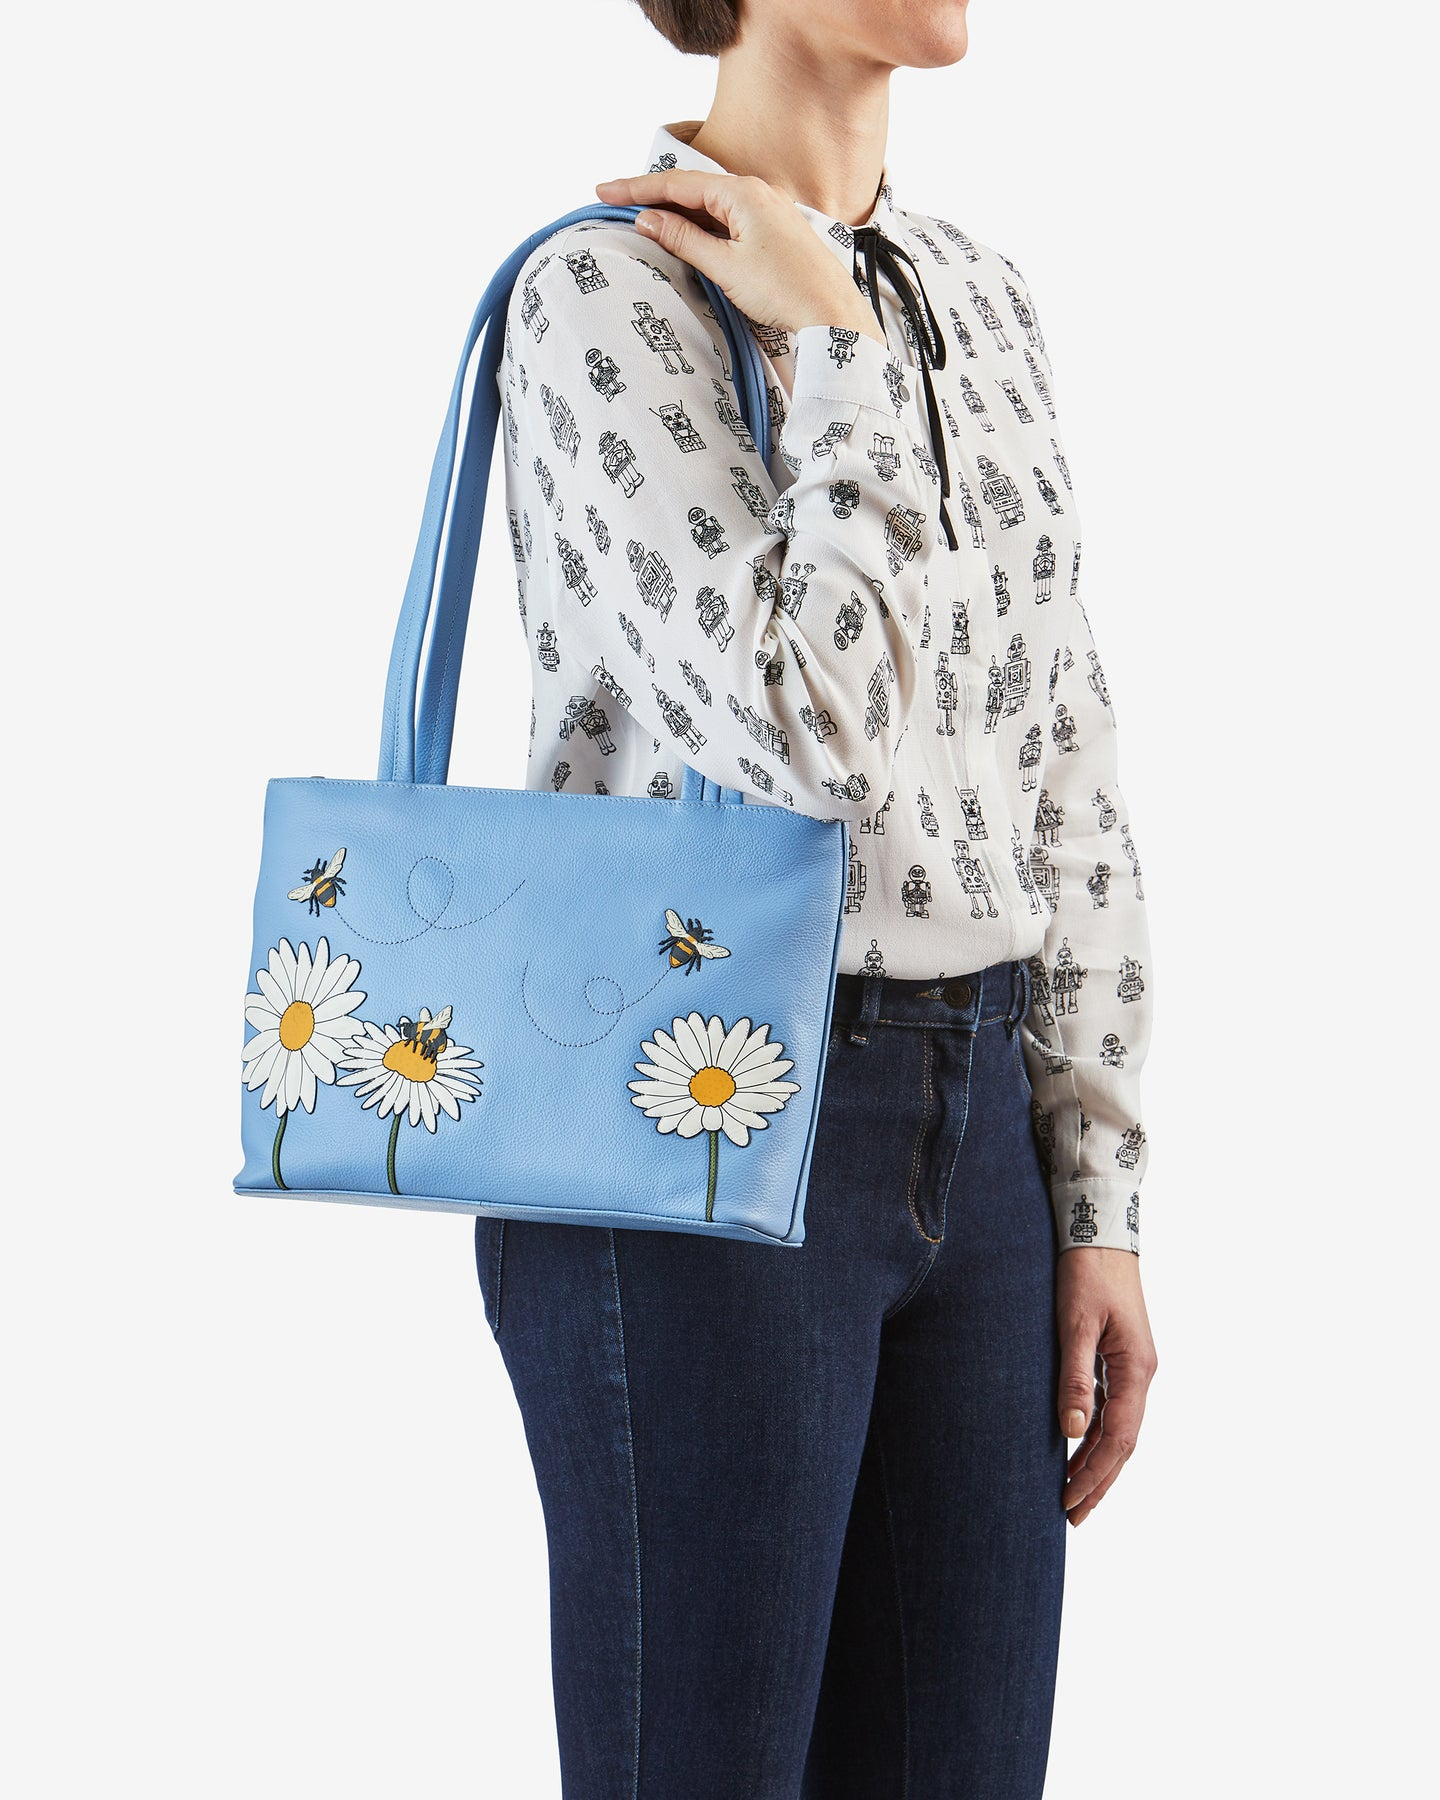 Bee Happy Blue Leather Shoulder Bag handmade by yoshi RRP £85.00